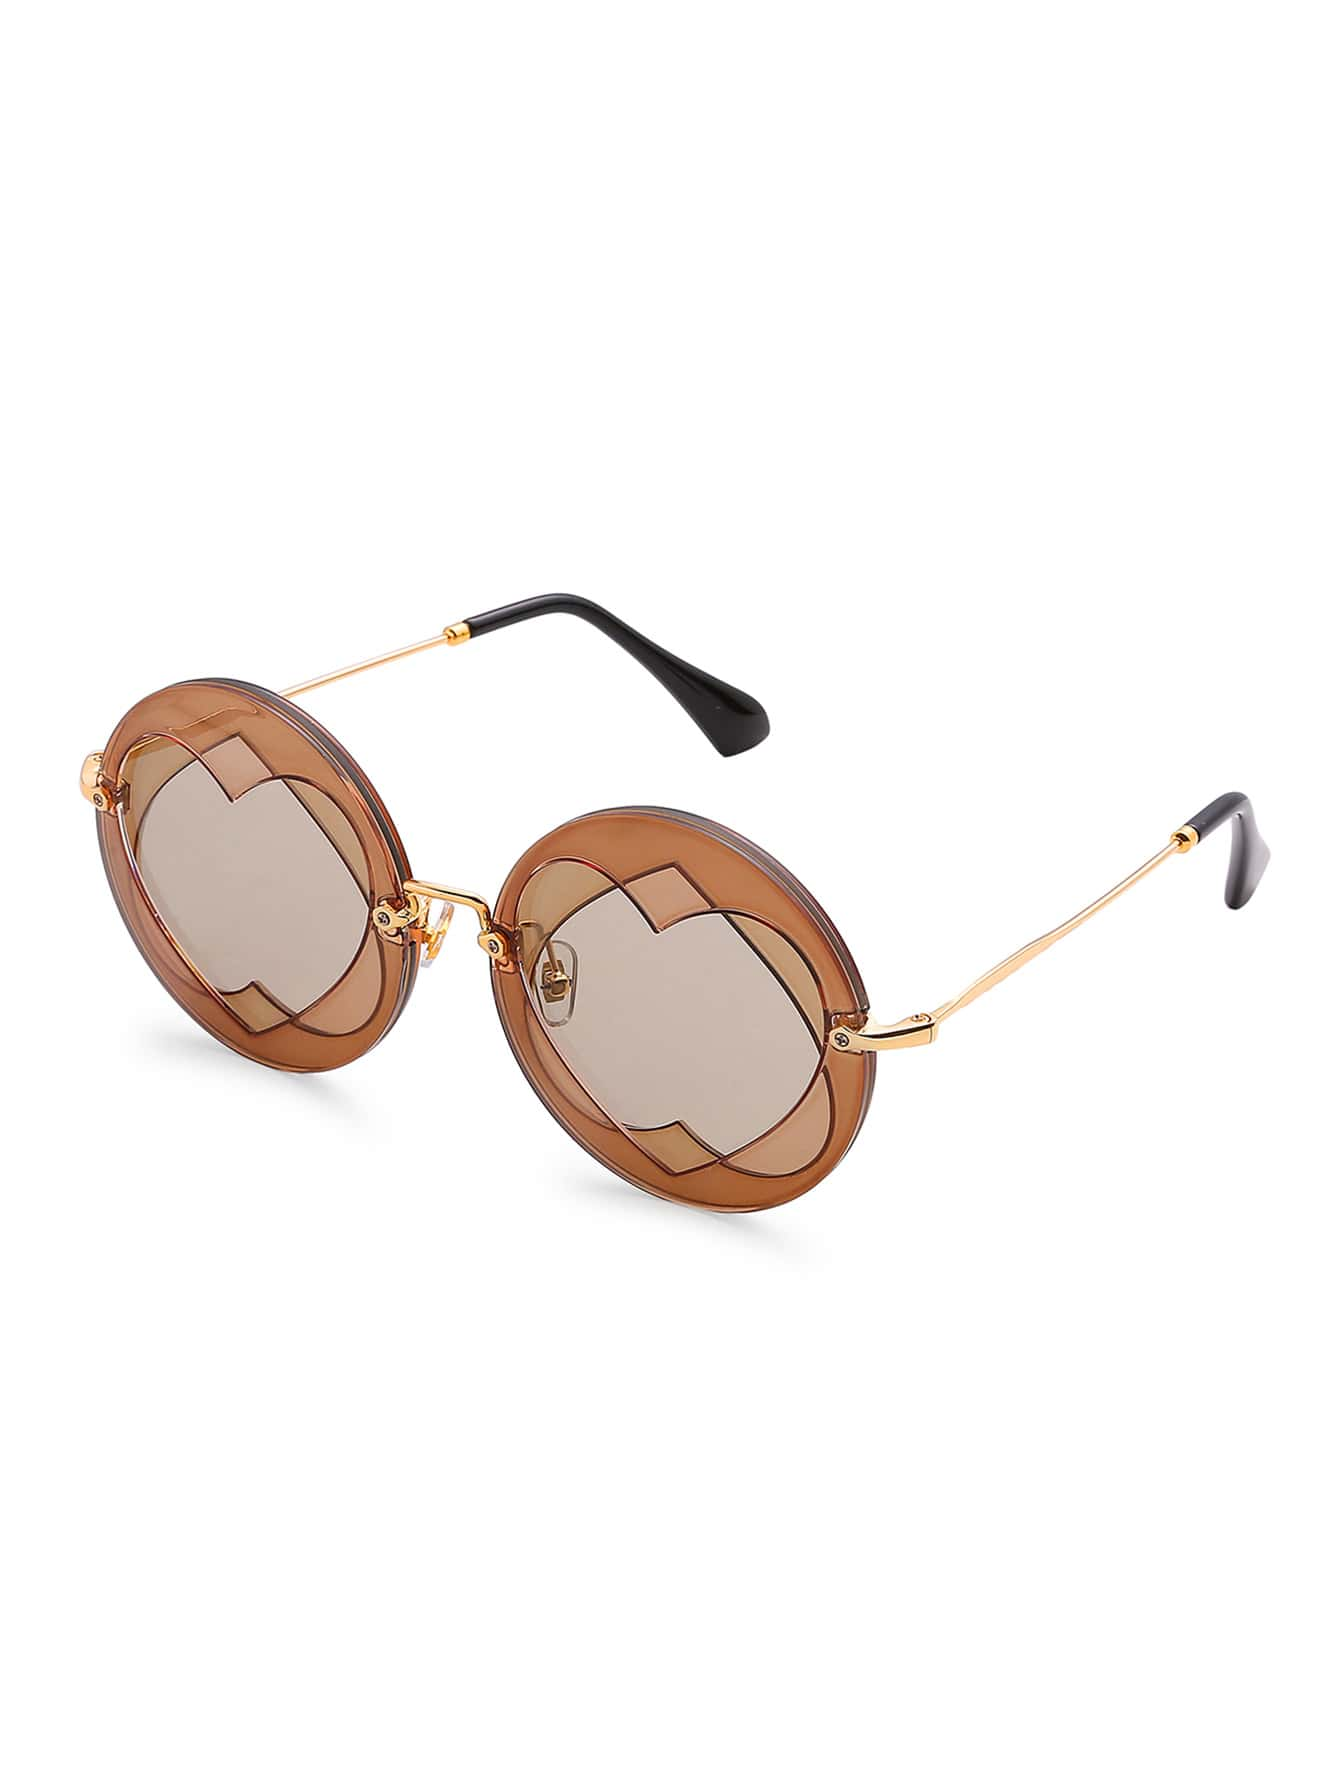 3abb4dc24dddd Layered Heart Round Sunglasses -SheIn(Sheinside)